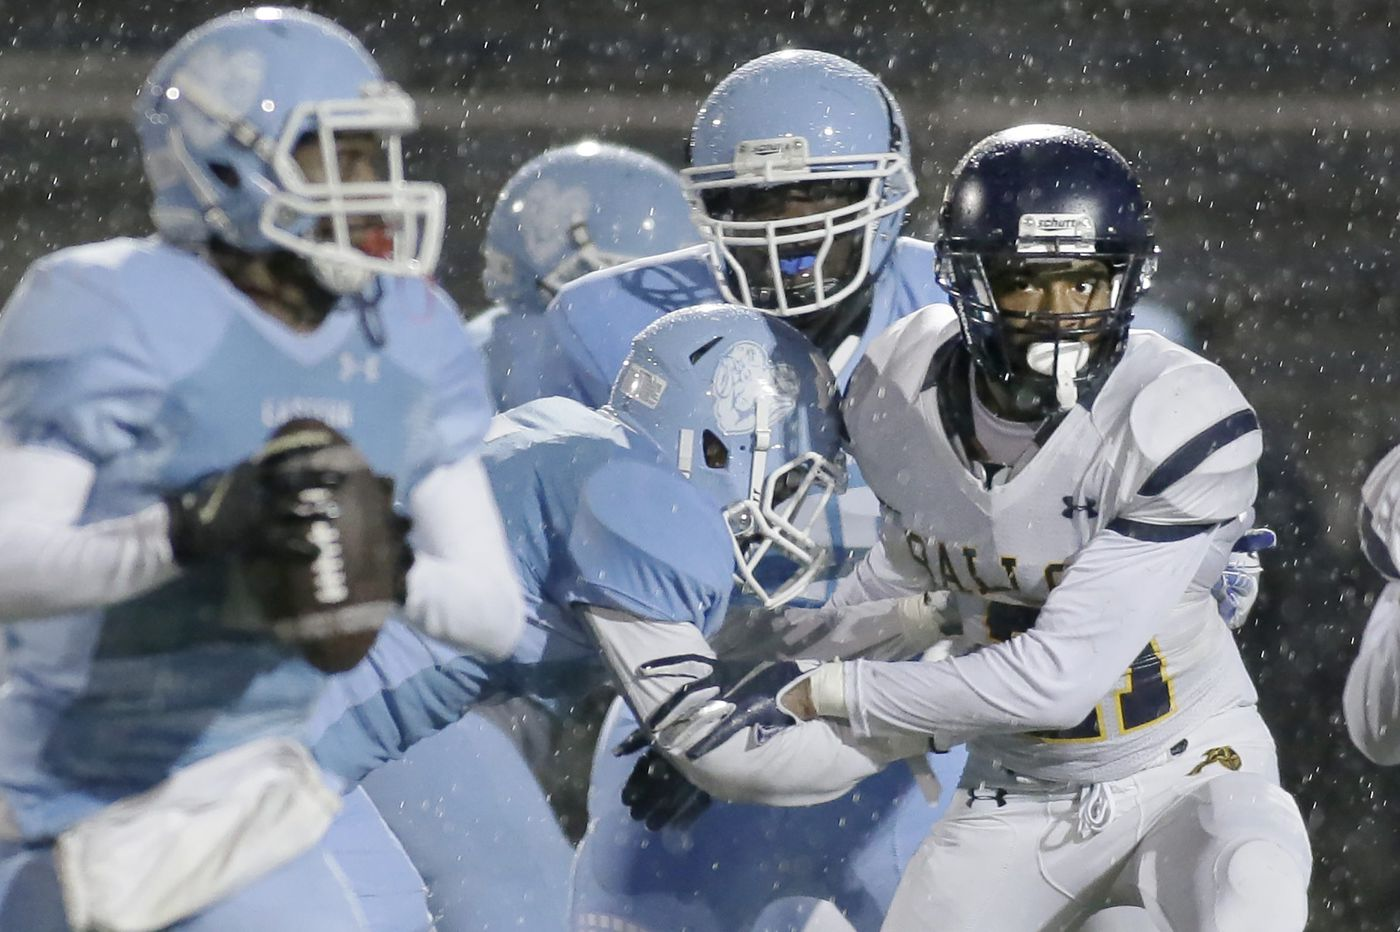 Once homeless, Temple football recruit Jamal Speaks glad to be back on the field